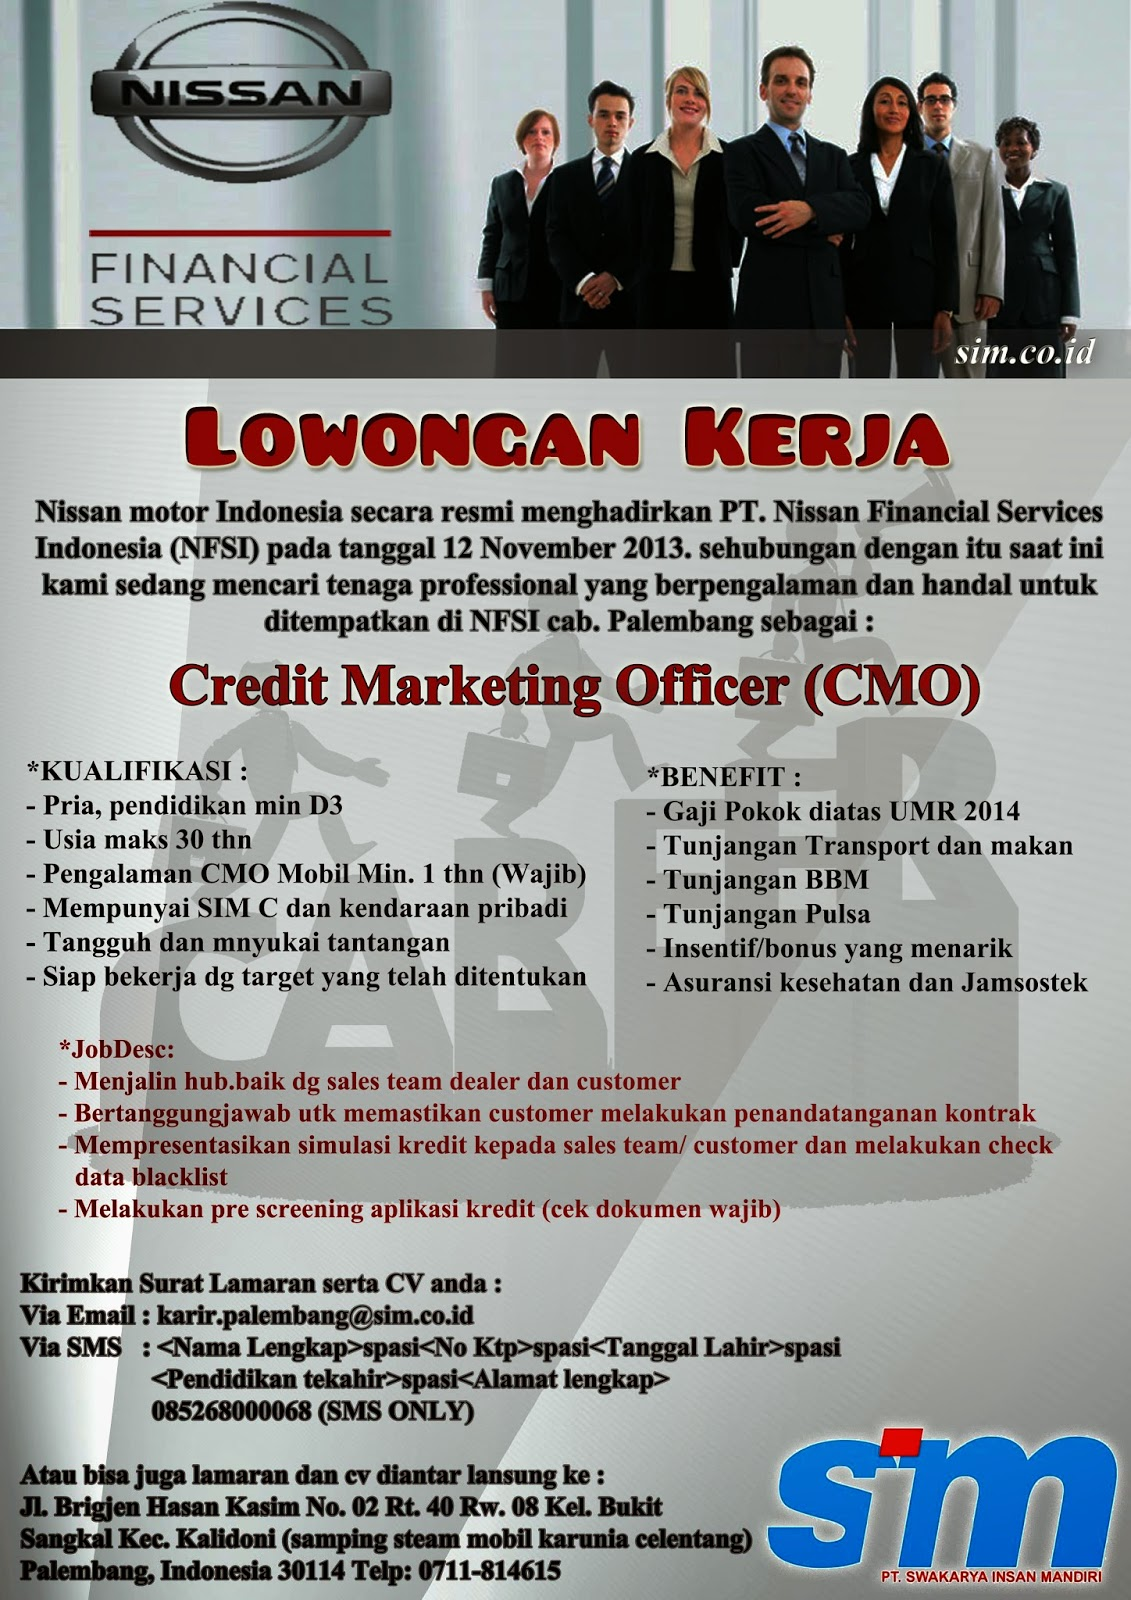 Lowongan Kerja Pt Nissan Financial Services Indonesia. Qualifications For A Private Investigator. Investing In A Money Market Mutual Fund. How To Buy And Sell Antiques. Scholarships Military Spouse